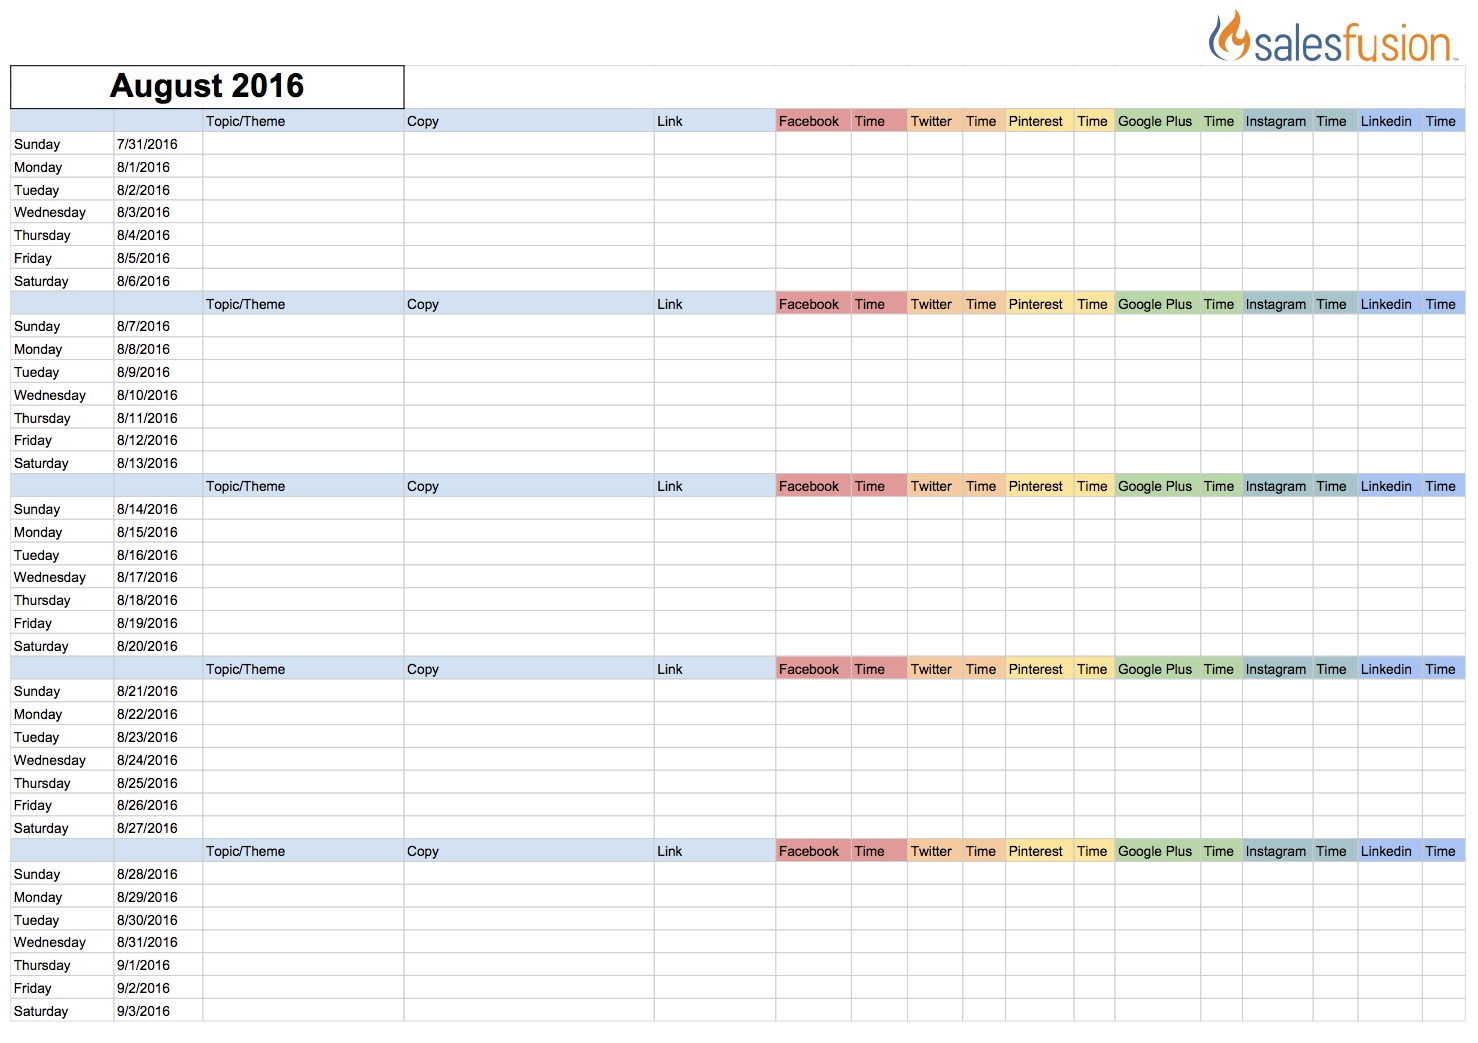 Social Media Content Calendar Template | Salesfusion intended for Social Content Calendar Template Monthly